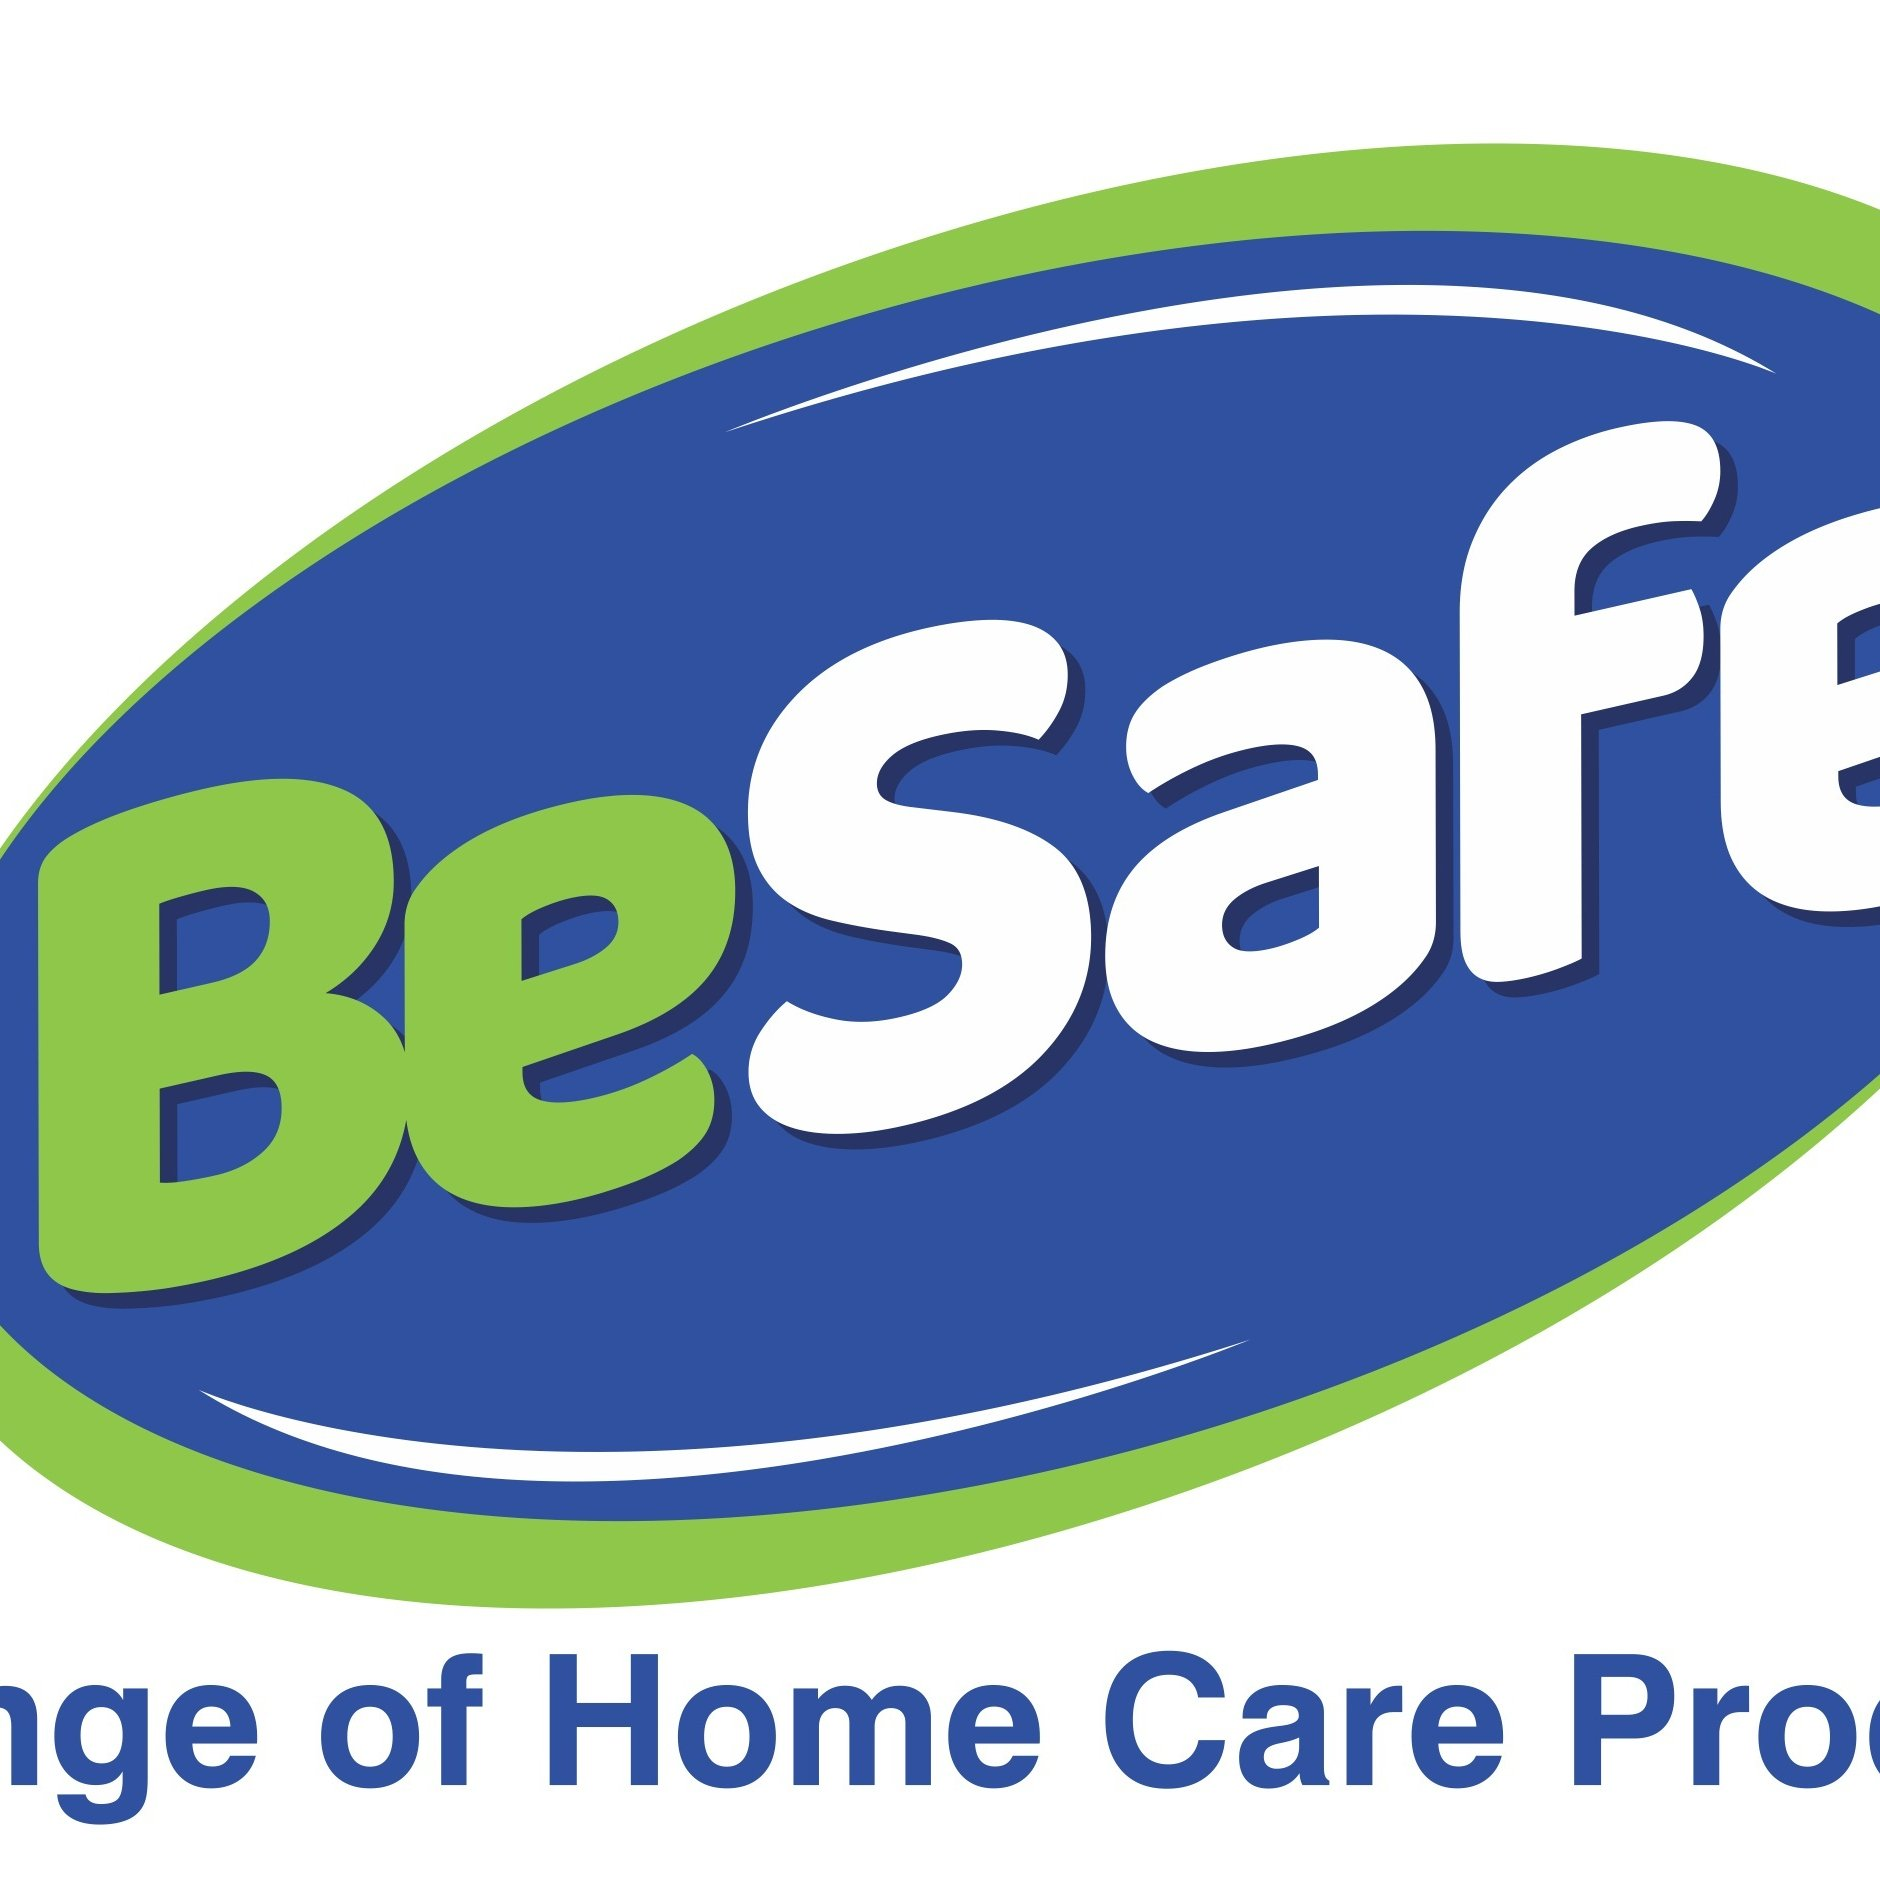 BeSafe on Twitter: